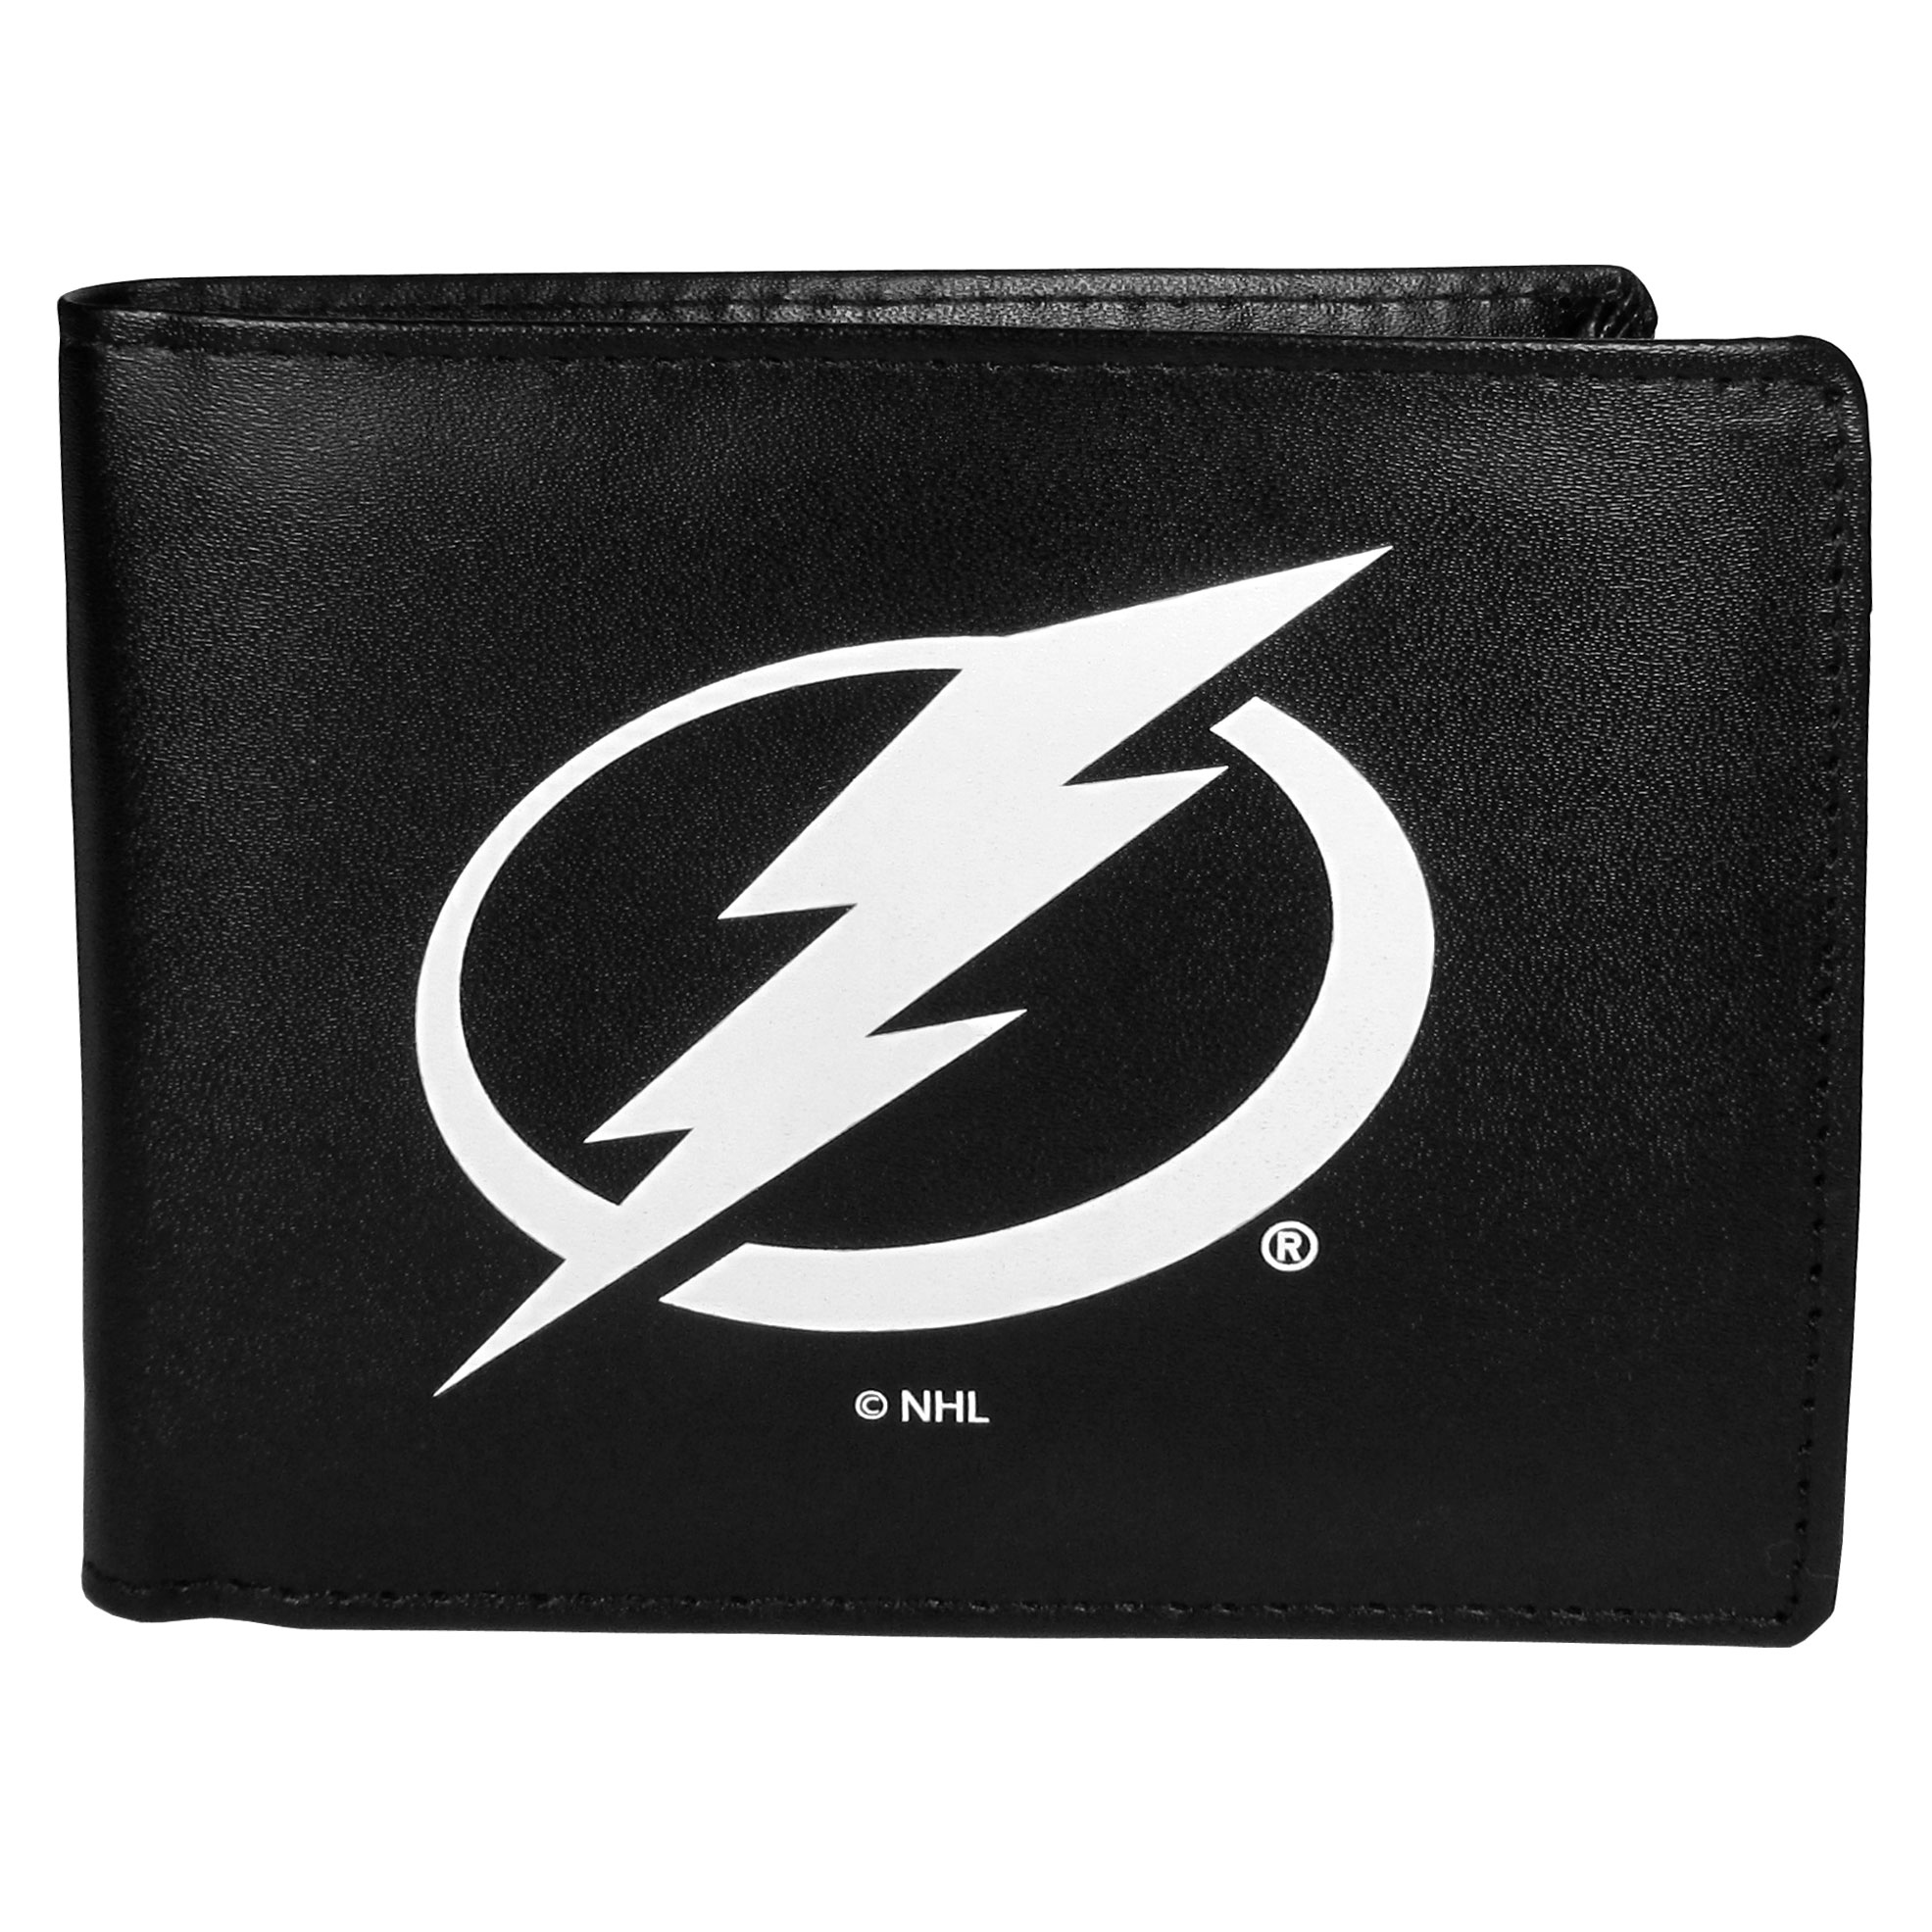 Tampa Bay Lightning® Leather Bi-fold Wallet, Large Logo - Our classic fine leather bi-fold wallet is meticulously crafted with genuine leather that will age beautifully so you will have a quality wallet for years to come. The wallet opens to a large, billfold pocket and numerous credit card slots and has a convenient windowed ID slot. The front of the wallet features an extra large Tampa Bay Lightning® printed logo.